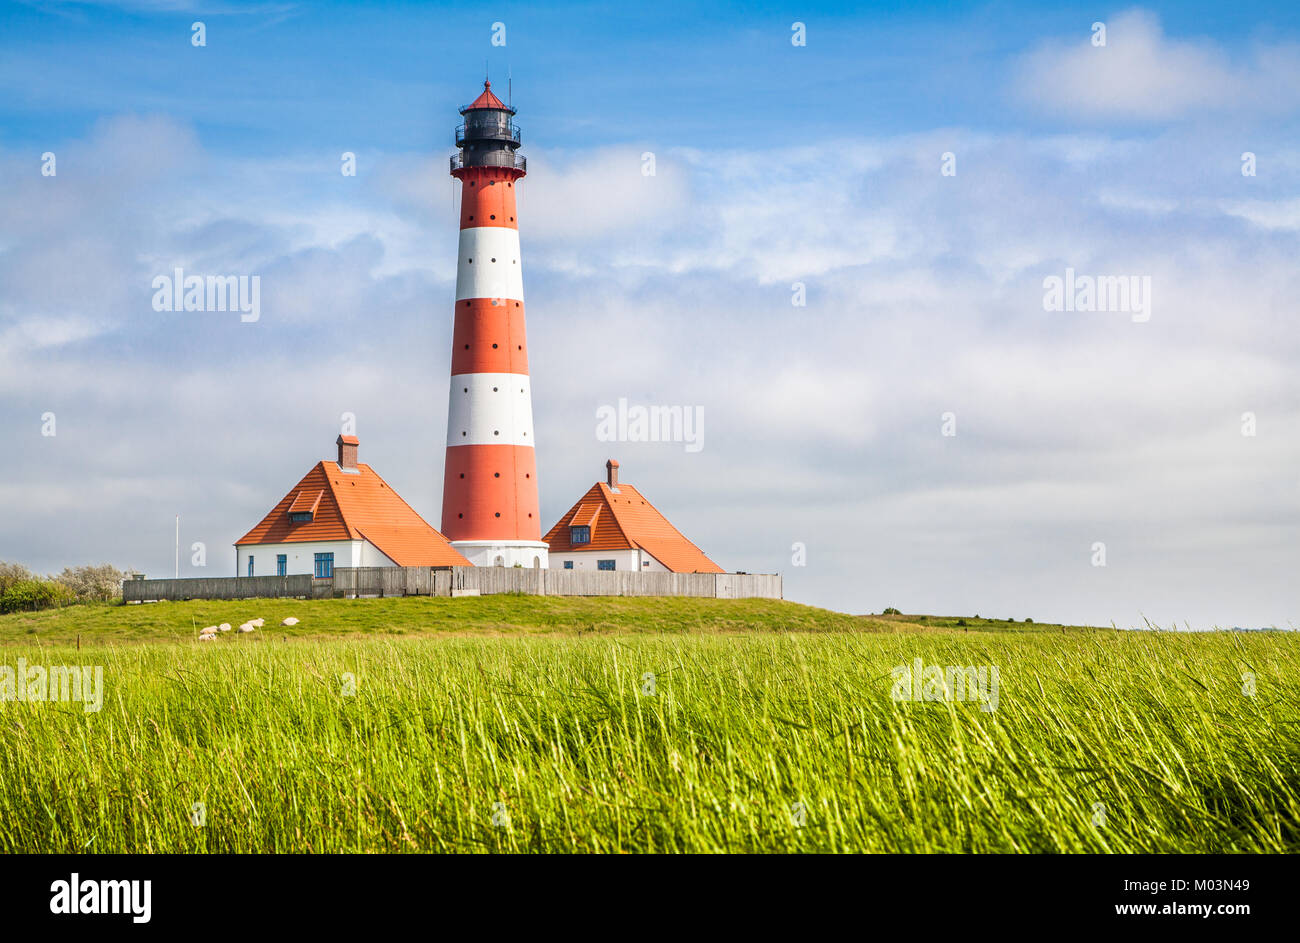 Beautiful coastal landscape with traditional lighthouse in the background at North Sea in Nordfriesland, Schleswig - Stock Image